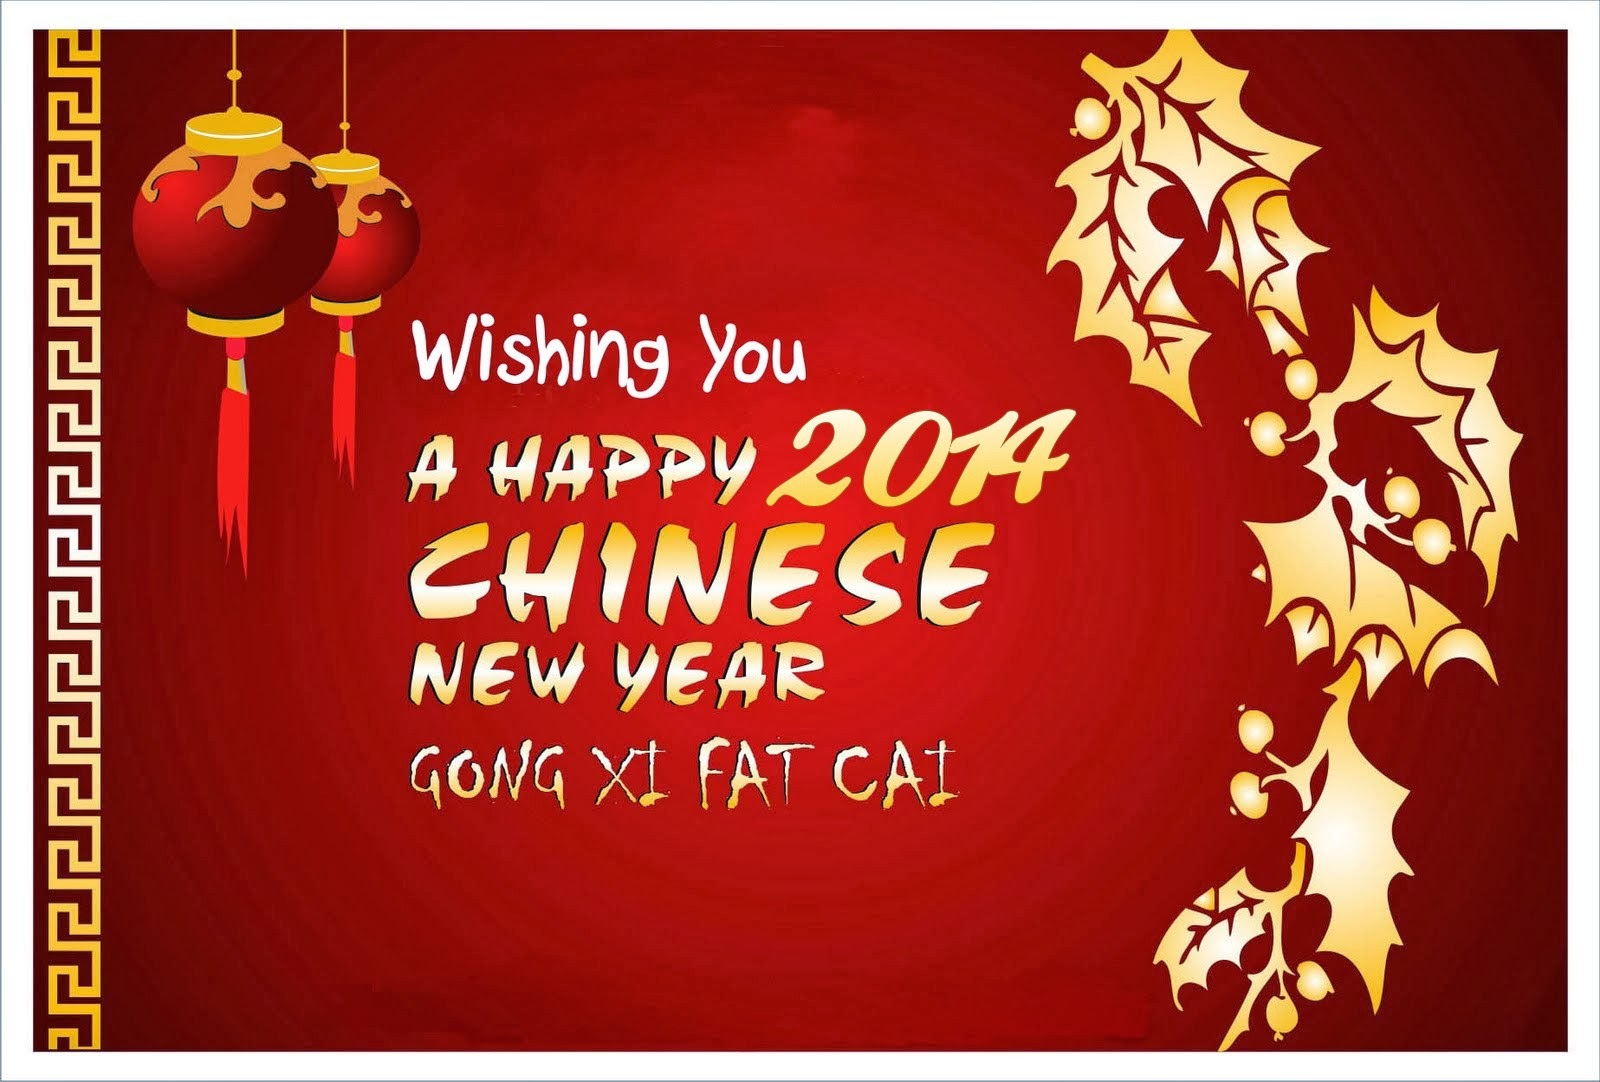 Happy Chinese New year 2014 HD